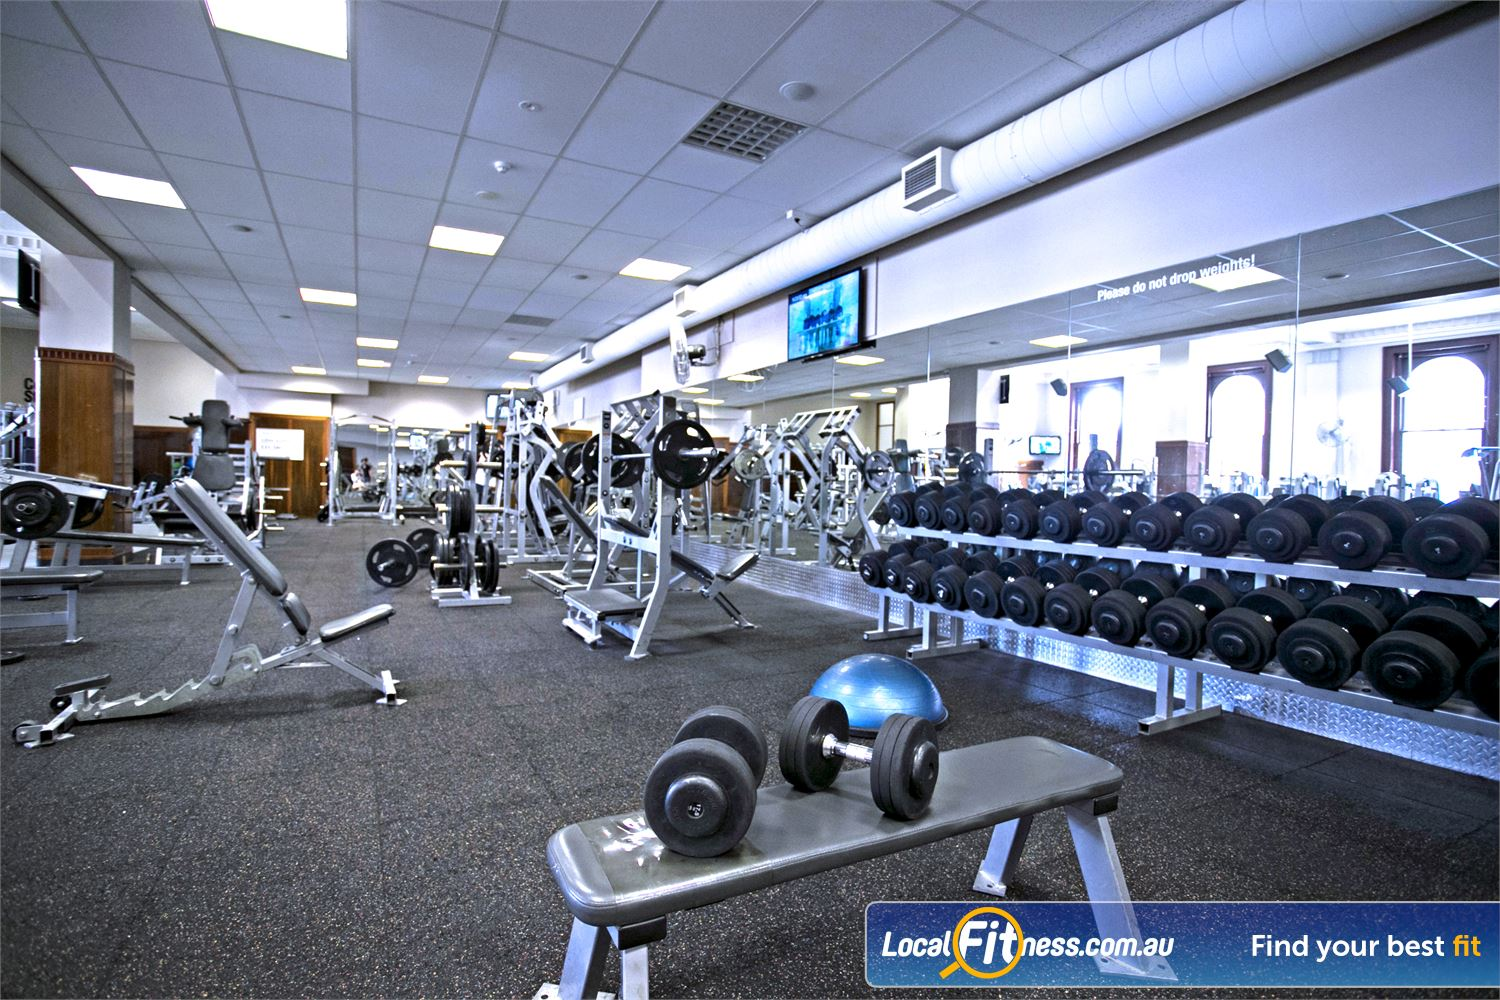 Goodlife Health Clubs Adelaide City Near Adelaide Airport Our free-weights area is full equipped with dumbbells, barbells, benches and more.